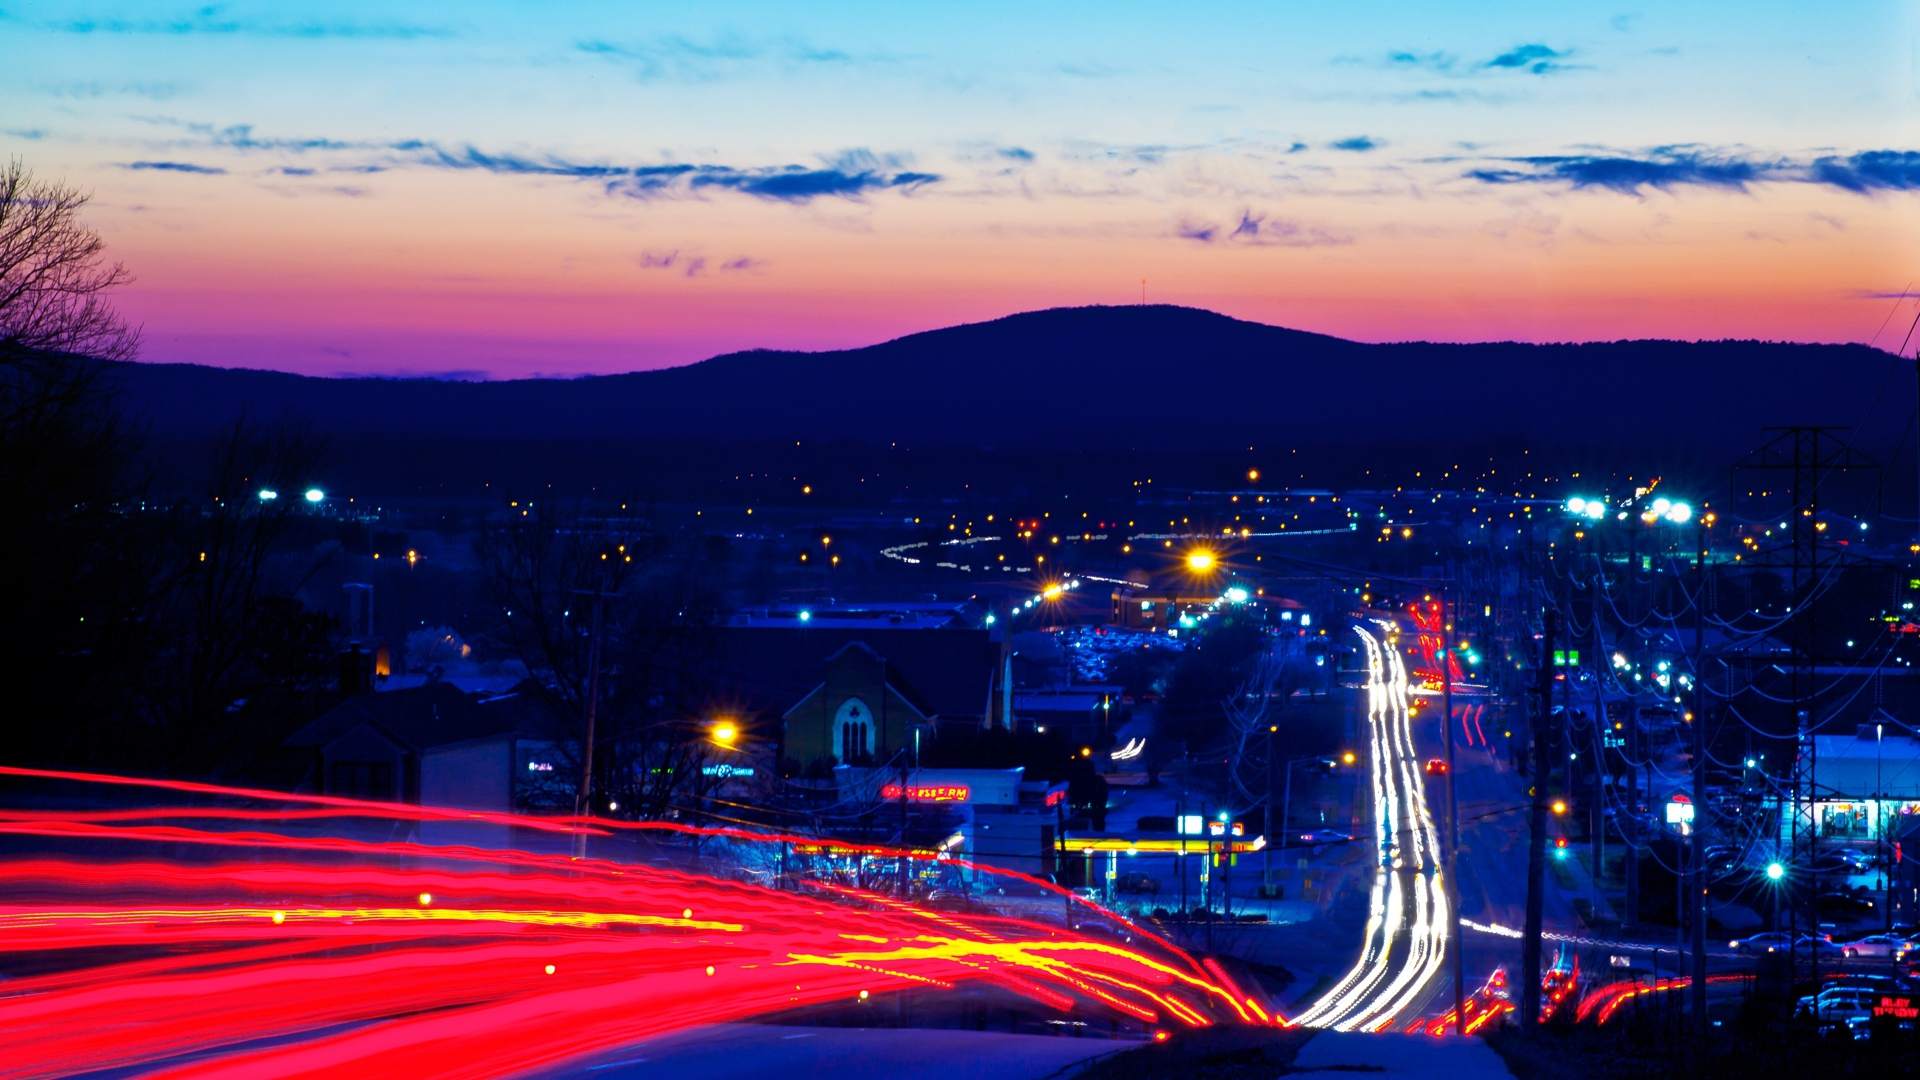 download wallpaper 1920x1080 city??, night, road, speed, lights full